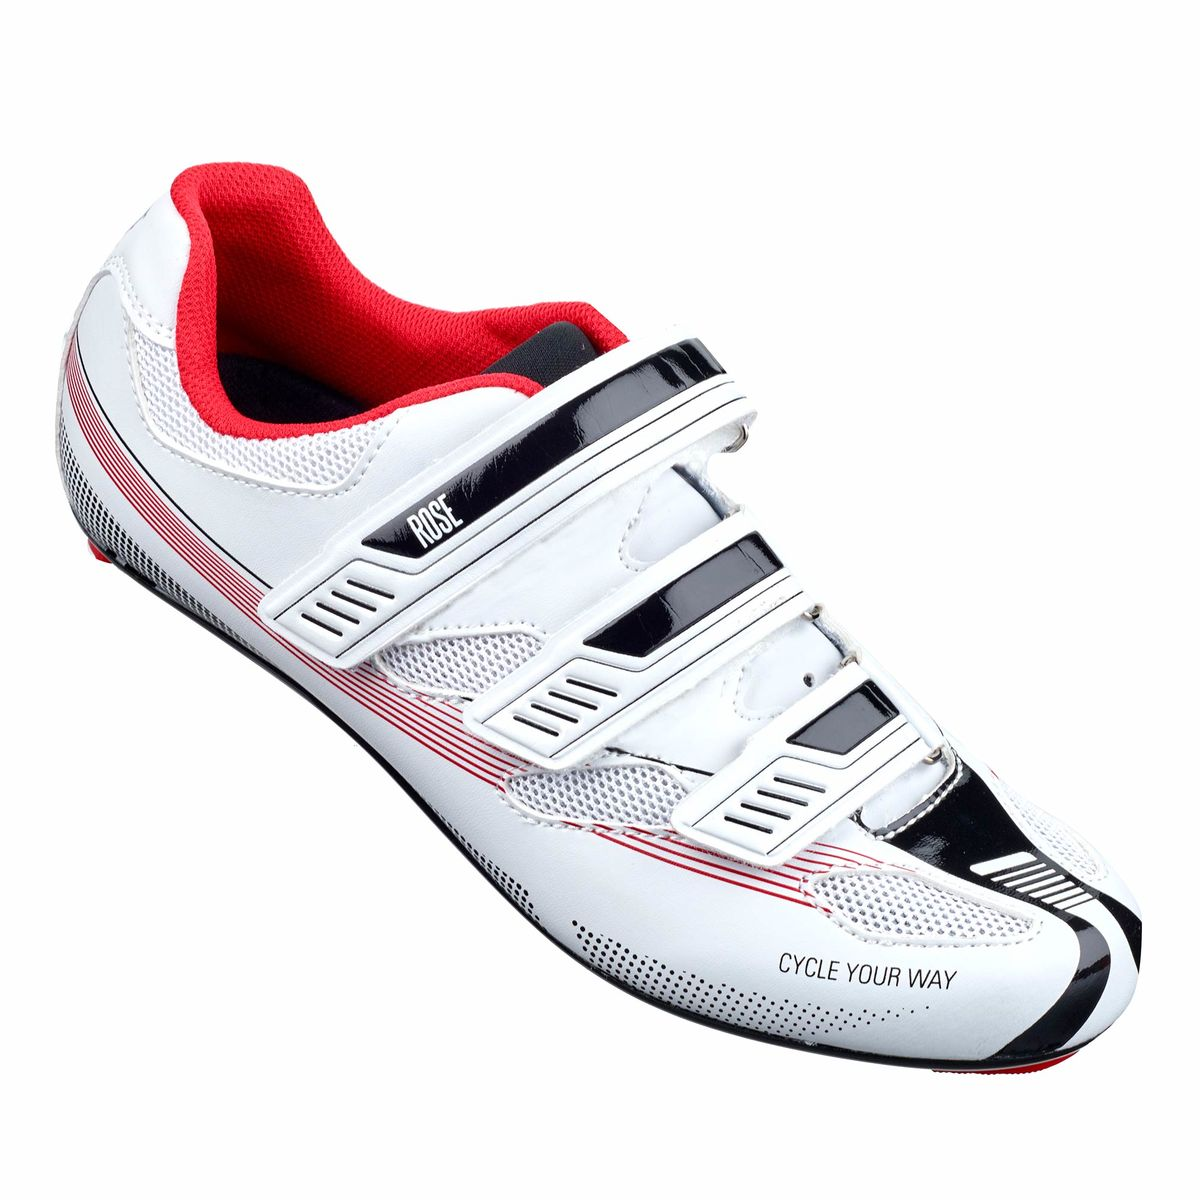 RRS 11 road shoes